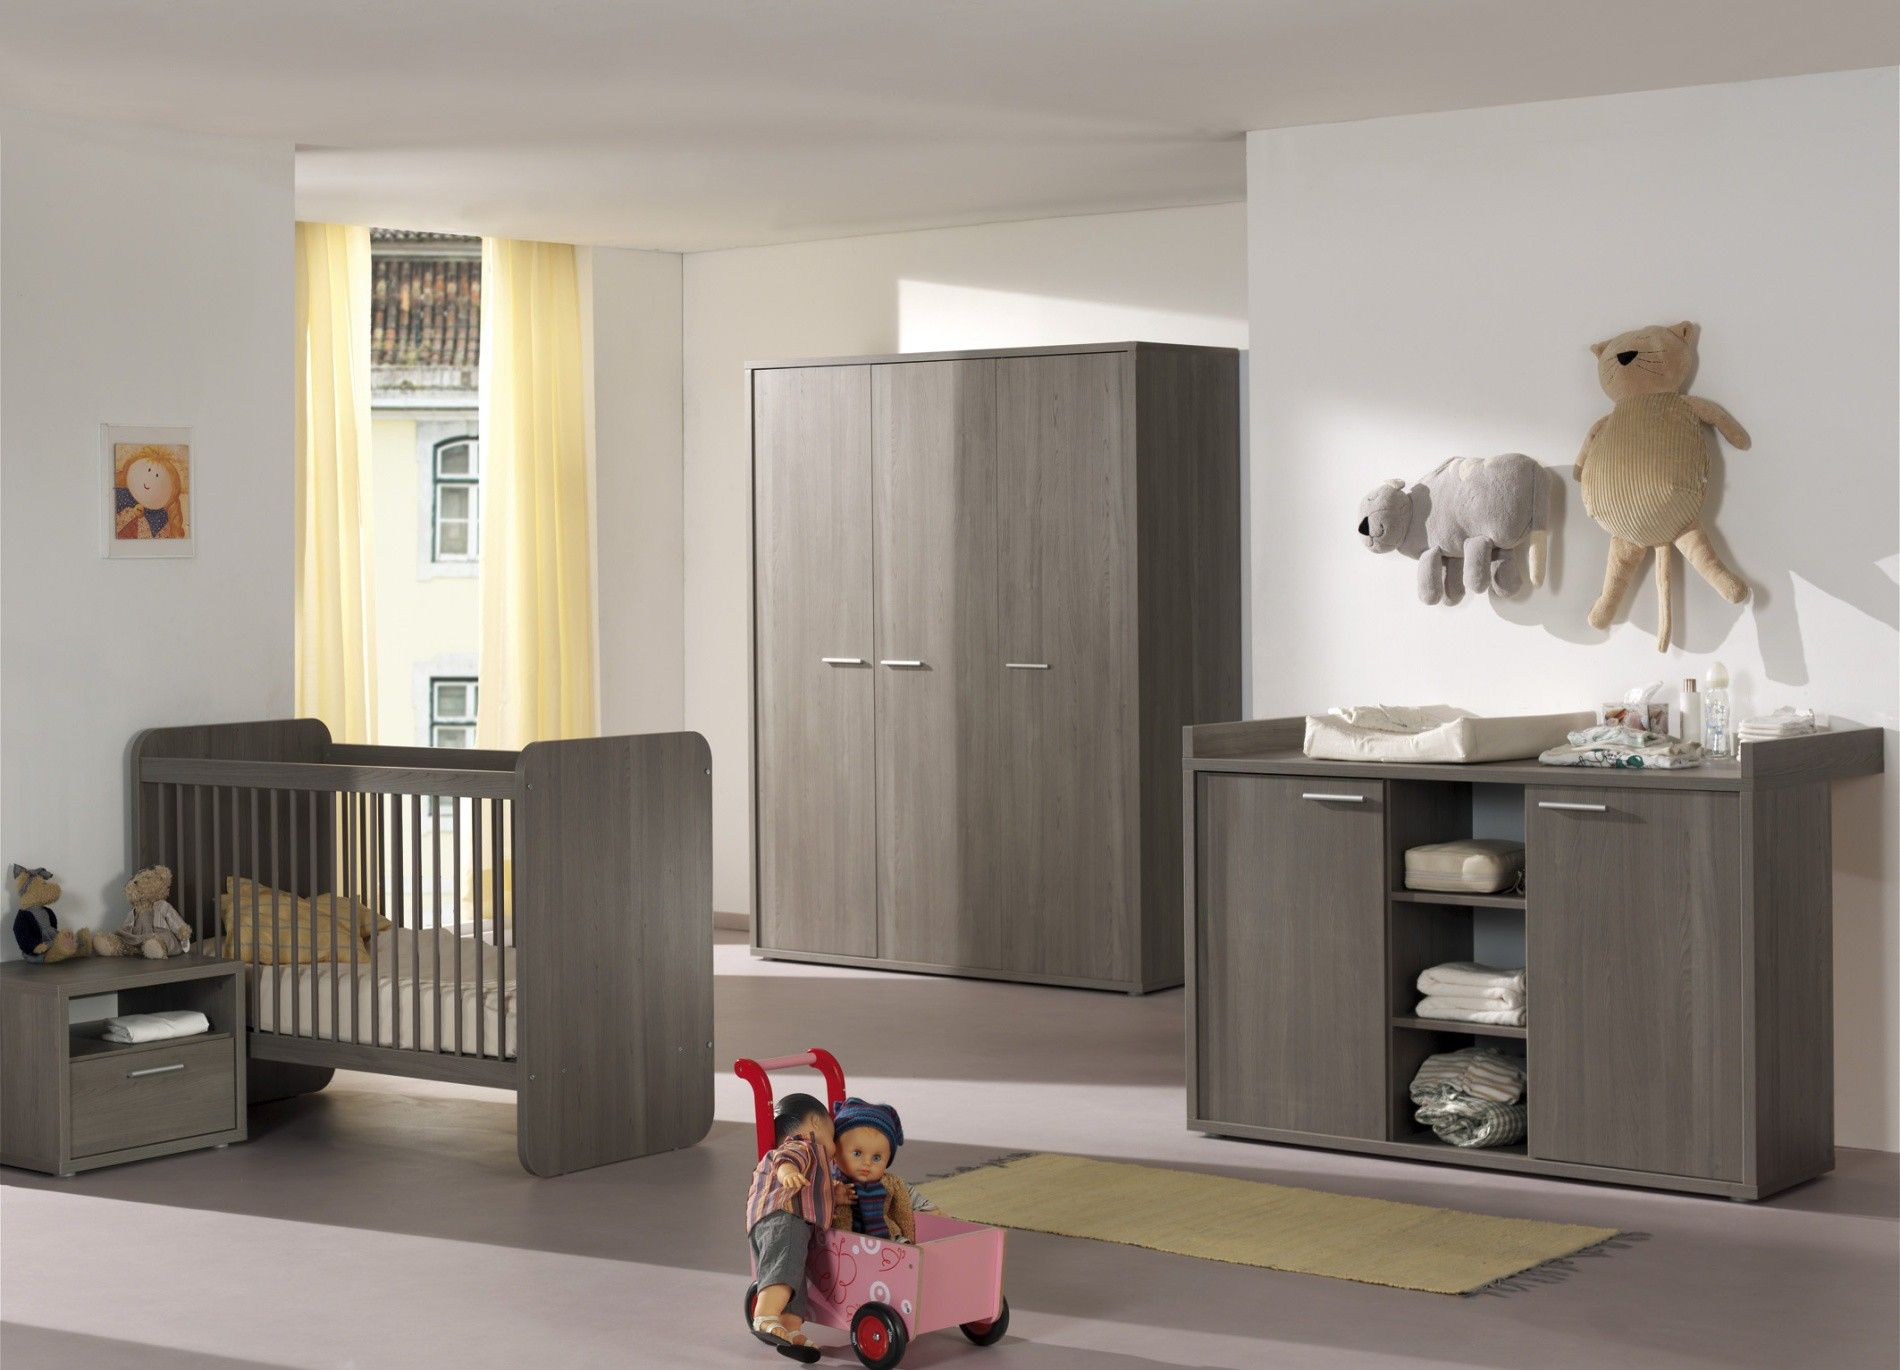 chambre coucher bb chambre bb complte lucie chambre bb complte moins cher - Chambre Bebe Ikea